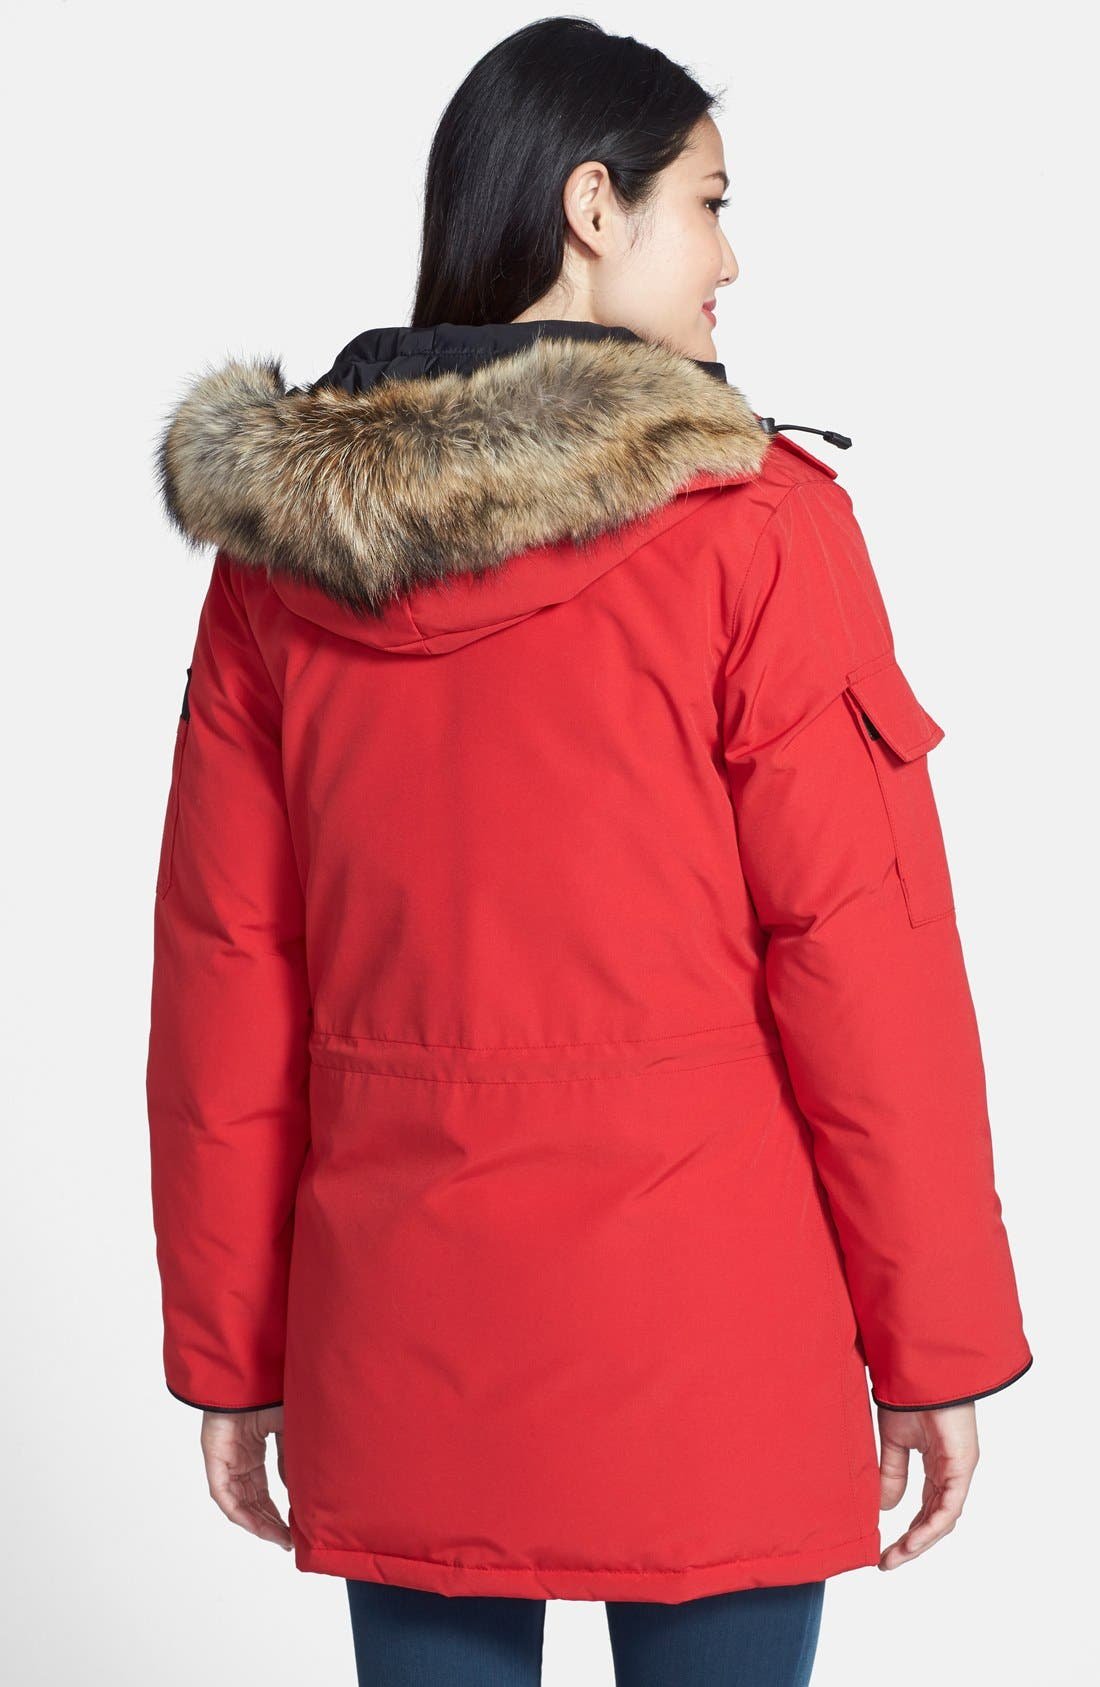 'Expedition' Relaxed Fit Down Parka with Genuine Coyote Fur,                             Alternate thumbnail 7, color,                             600